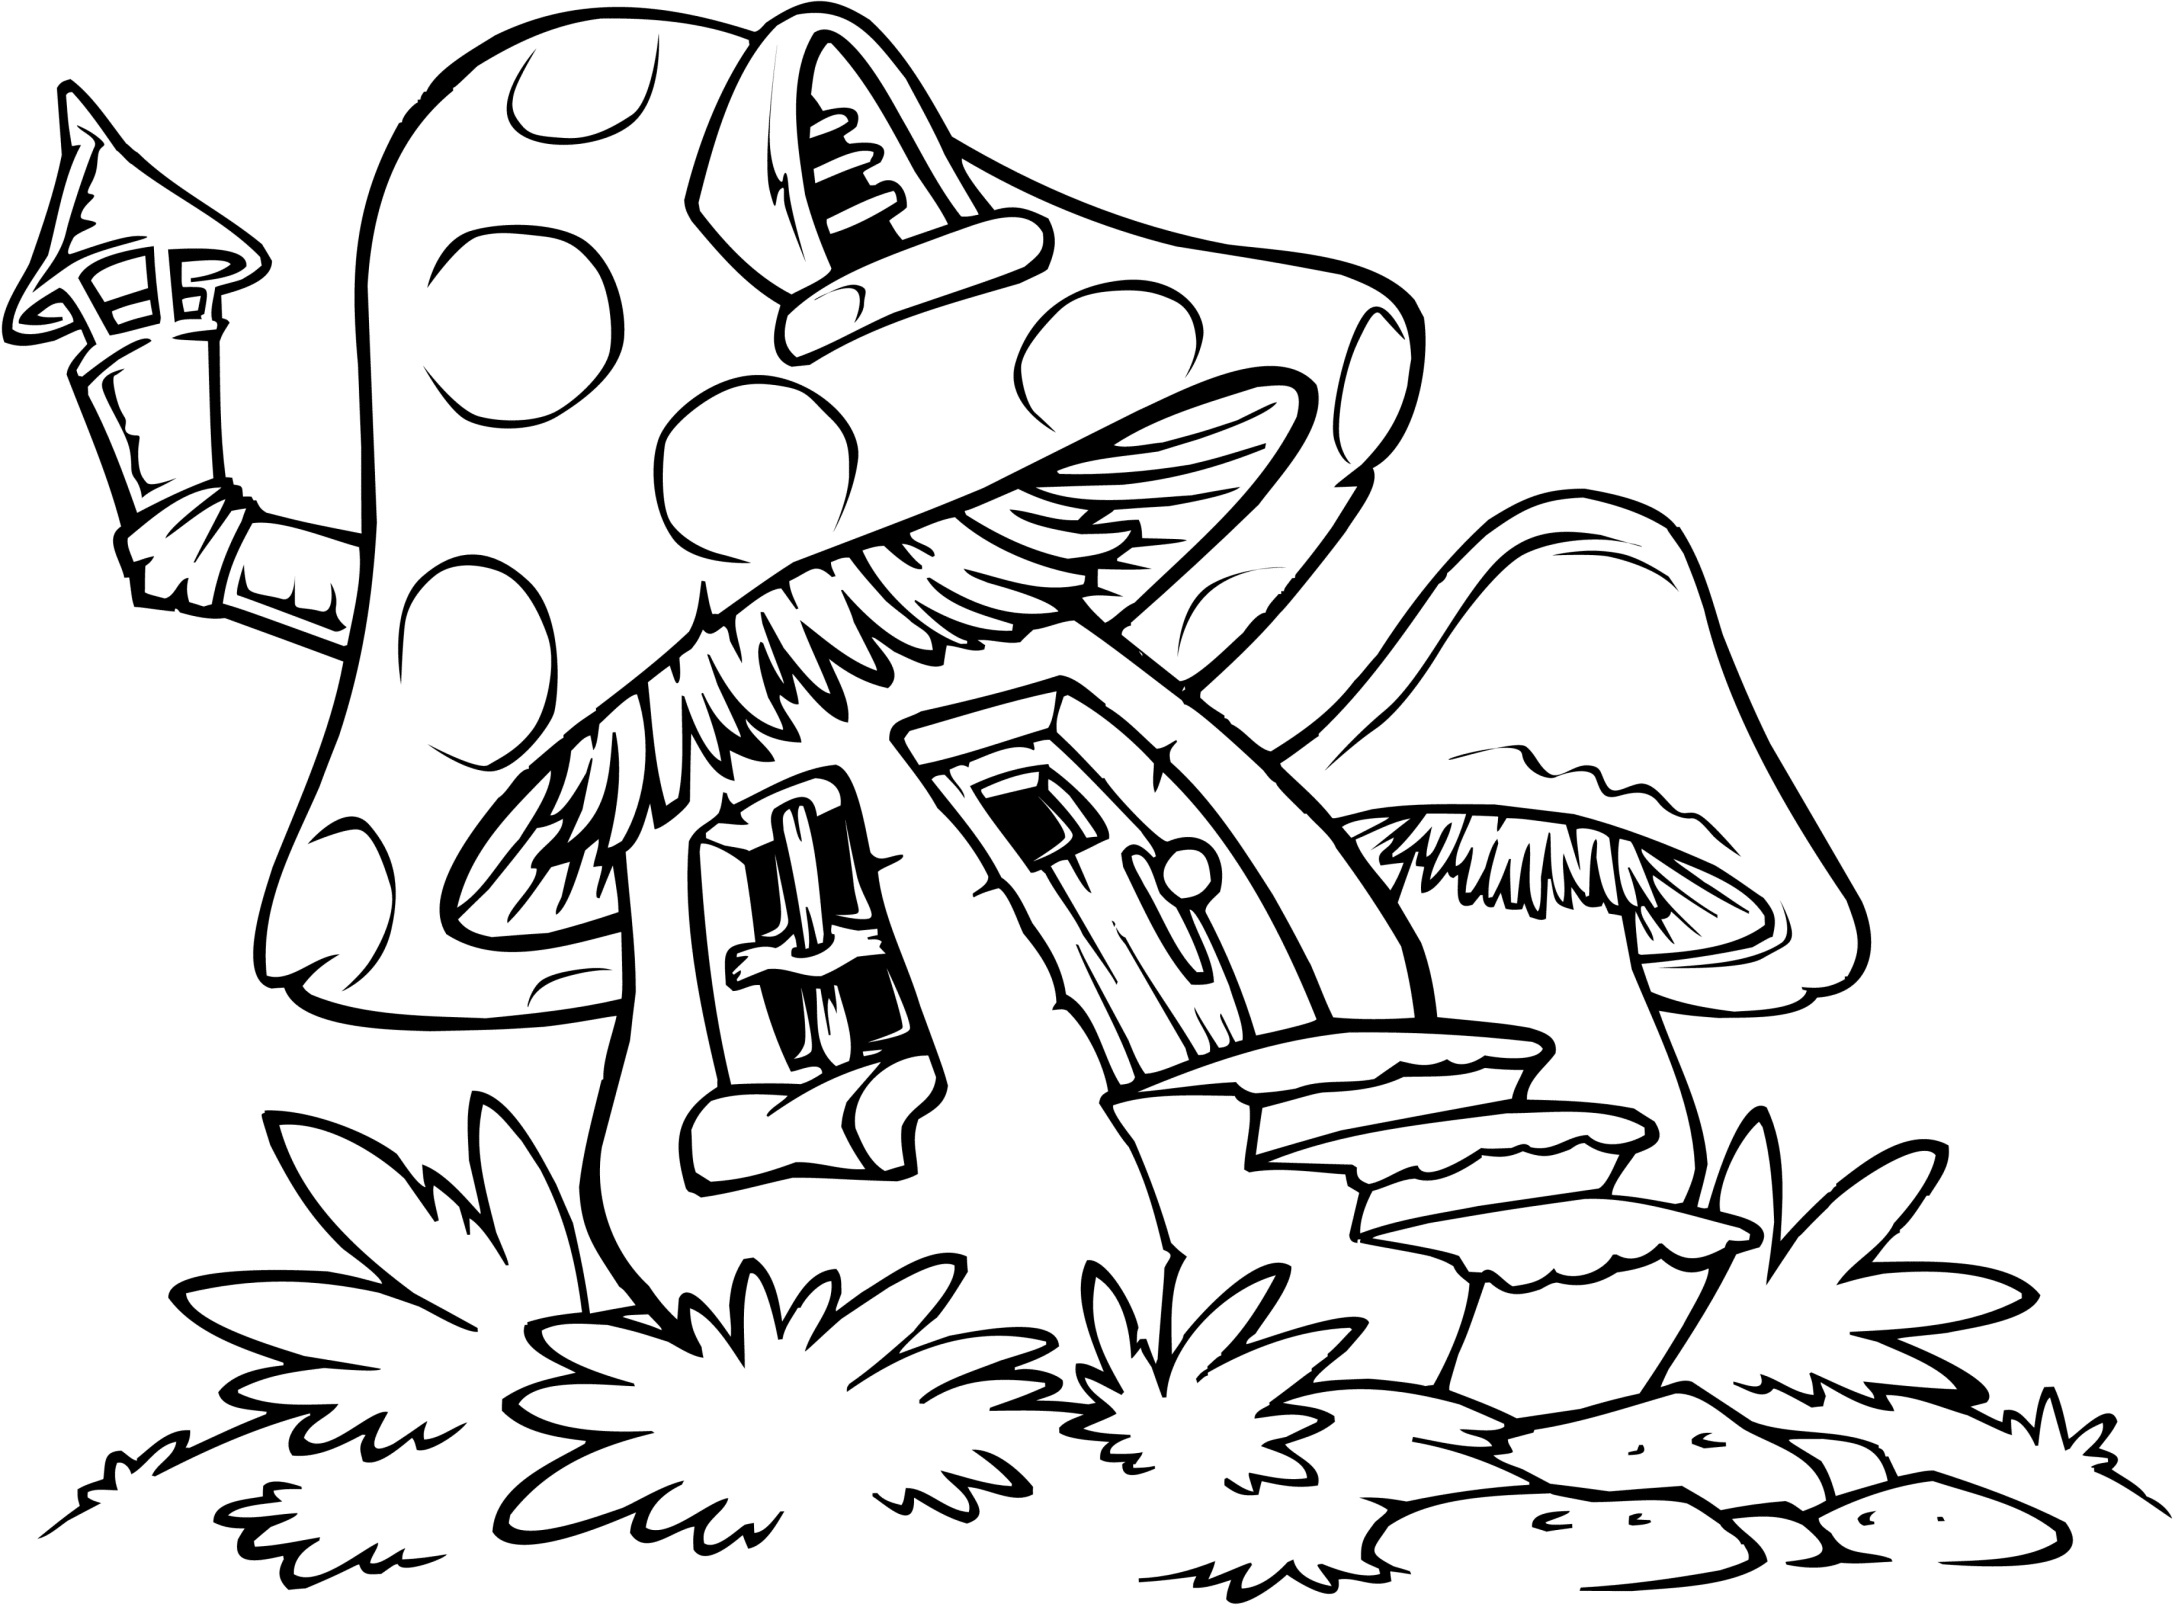 Easy Coloring Pages ⋆ coloring.rocks!